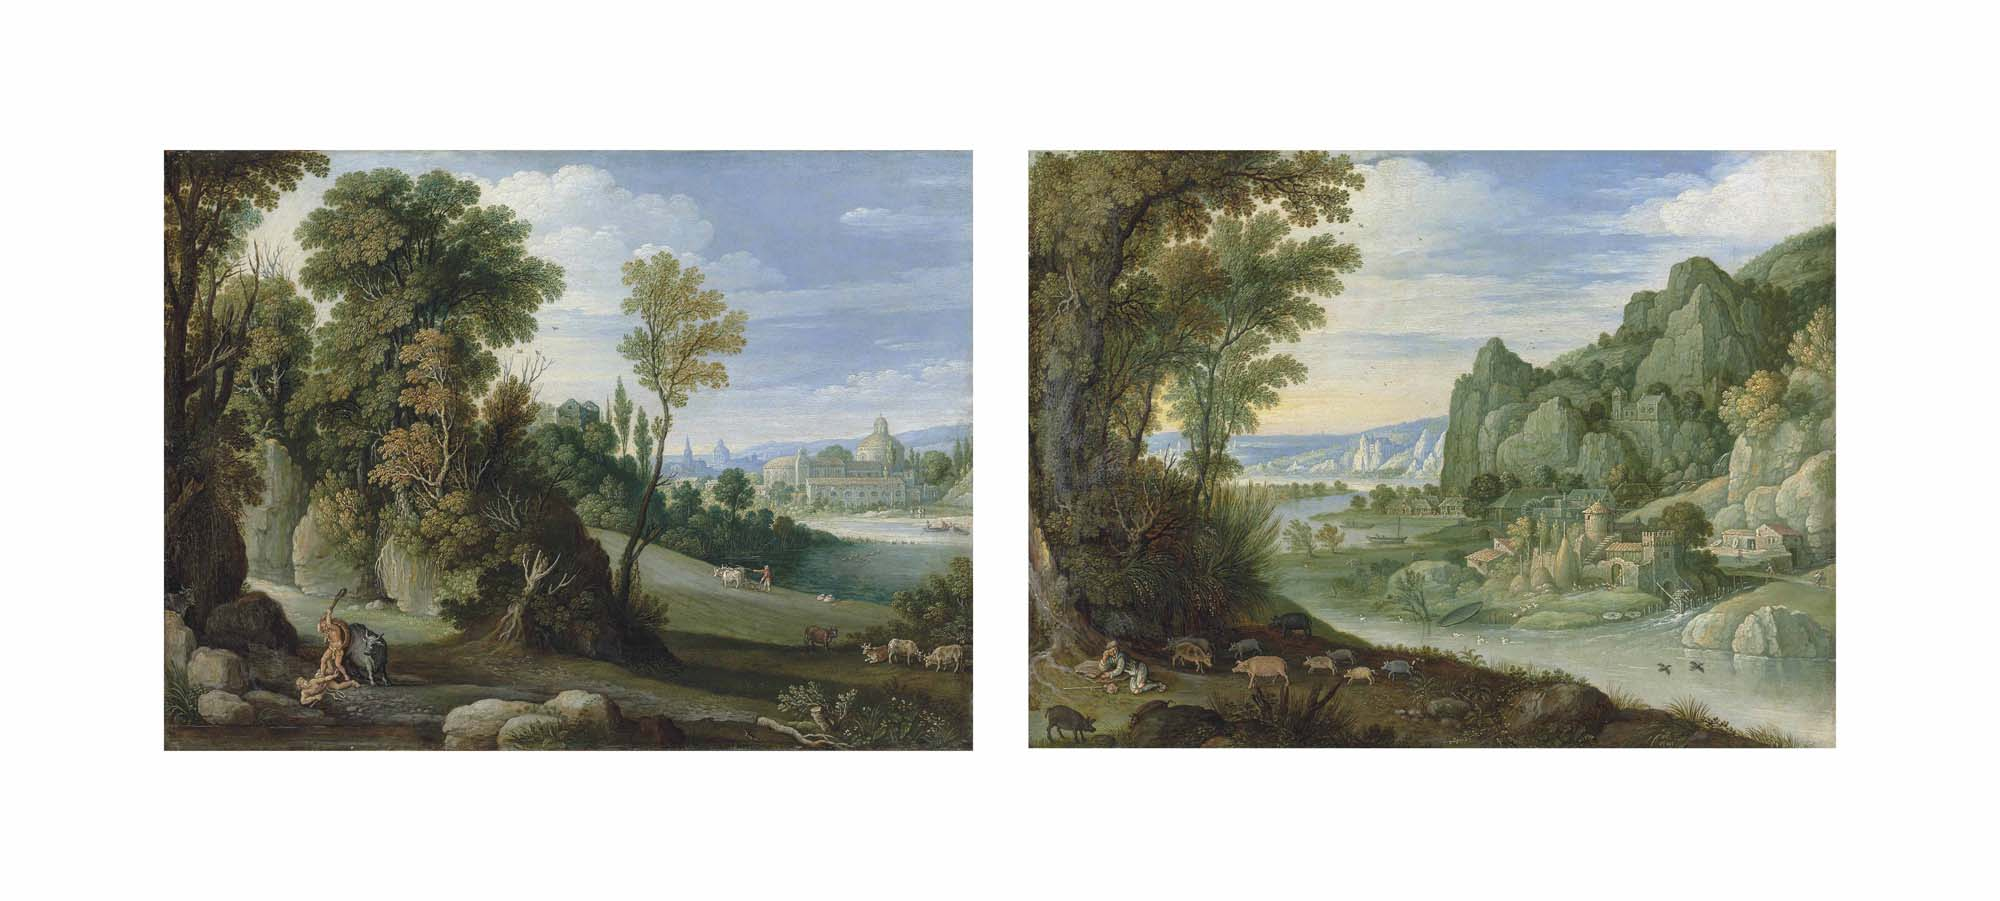 A wooded landscape with Hercules and Cacus; and A mountainous river landscape with the Prodigal Son